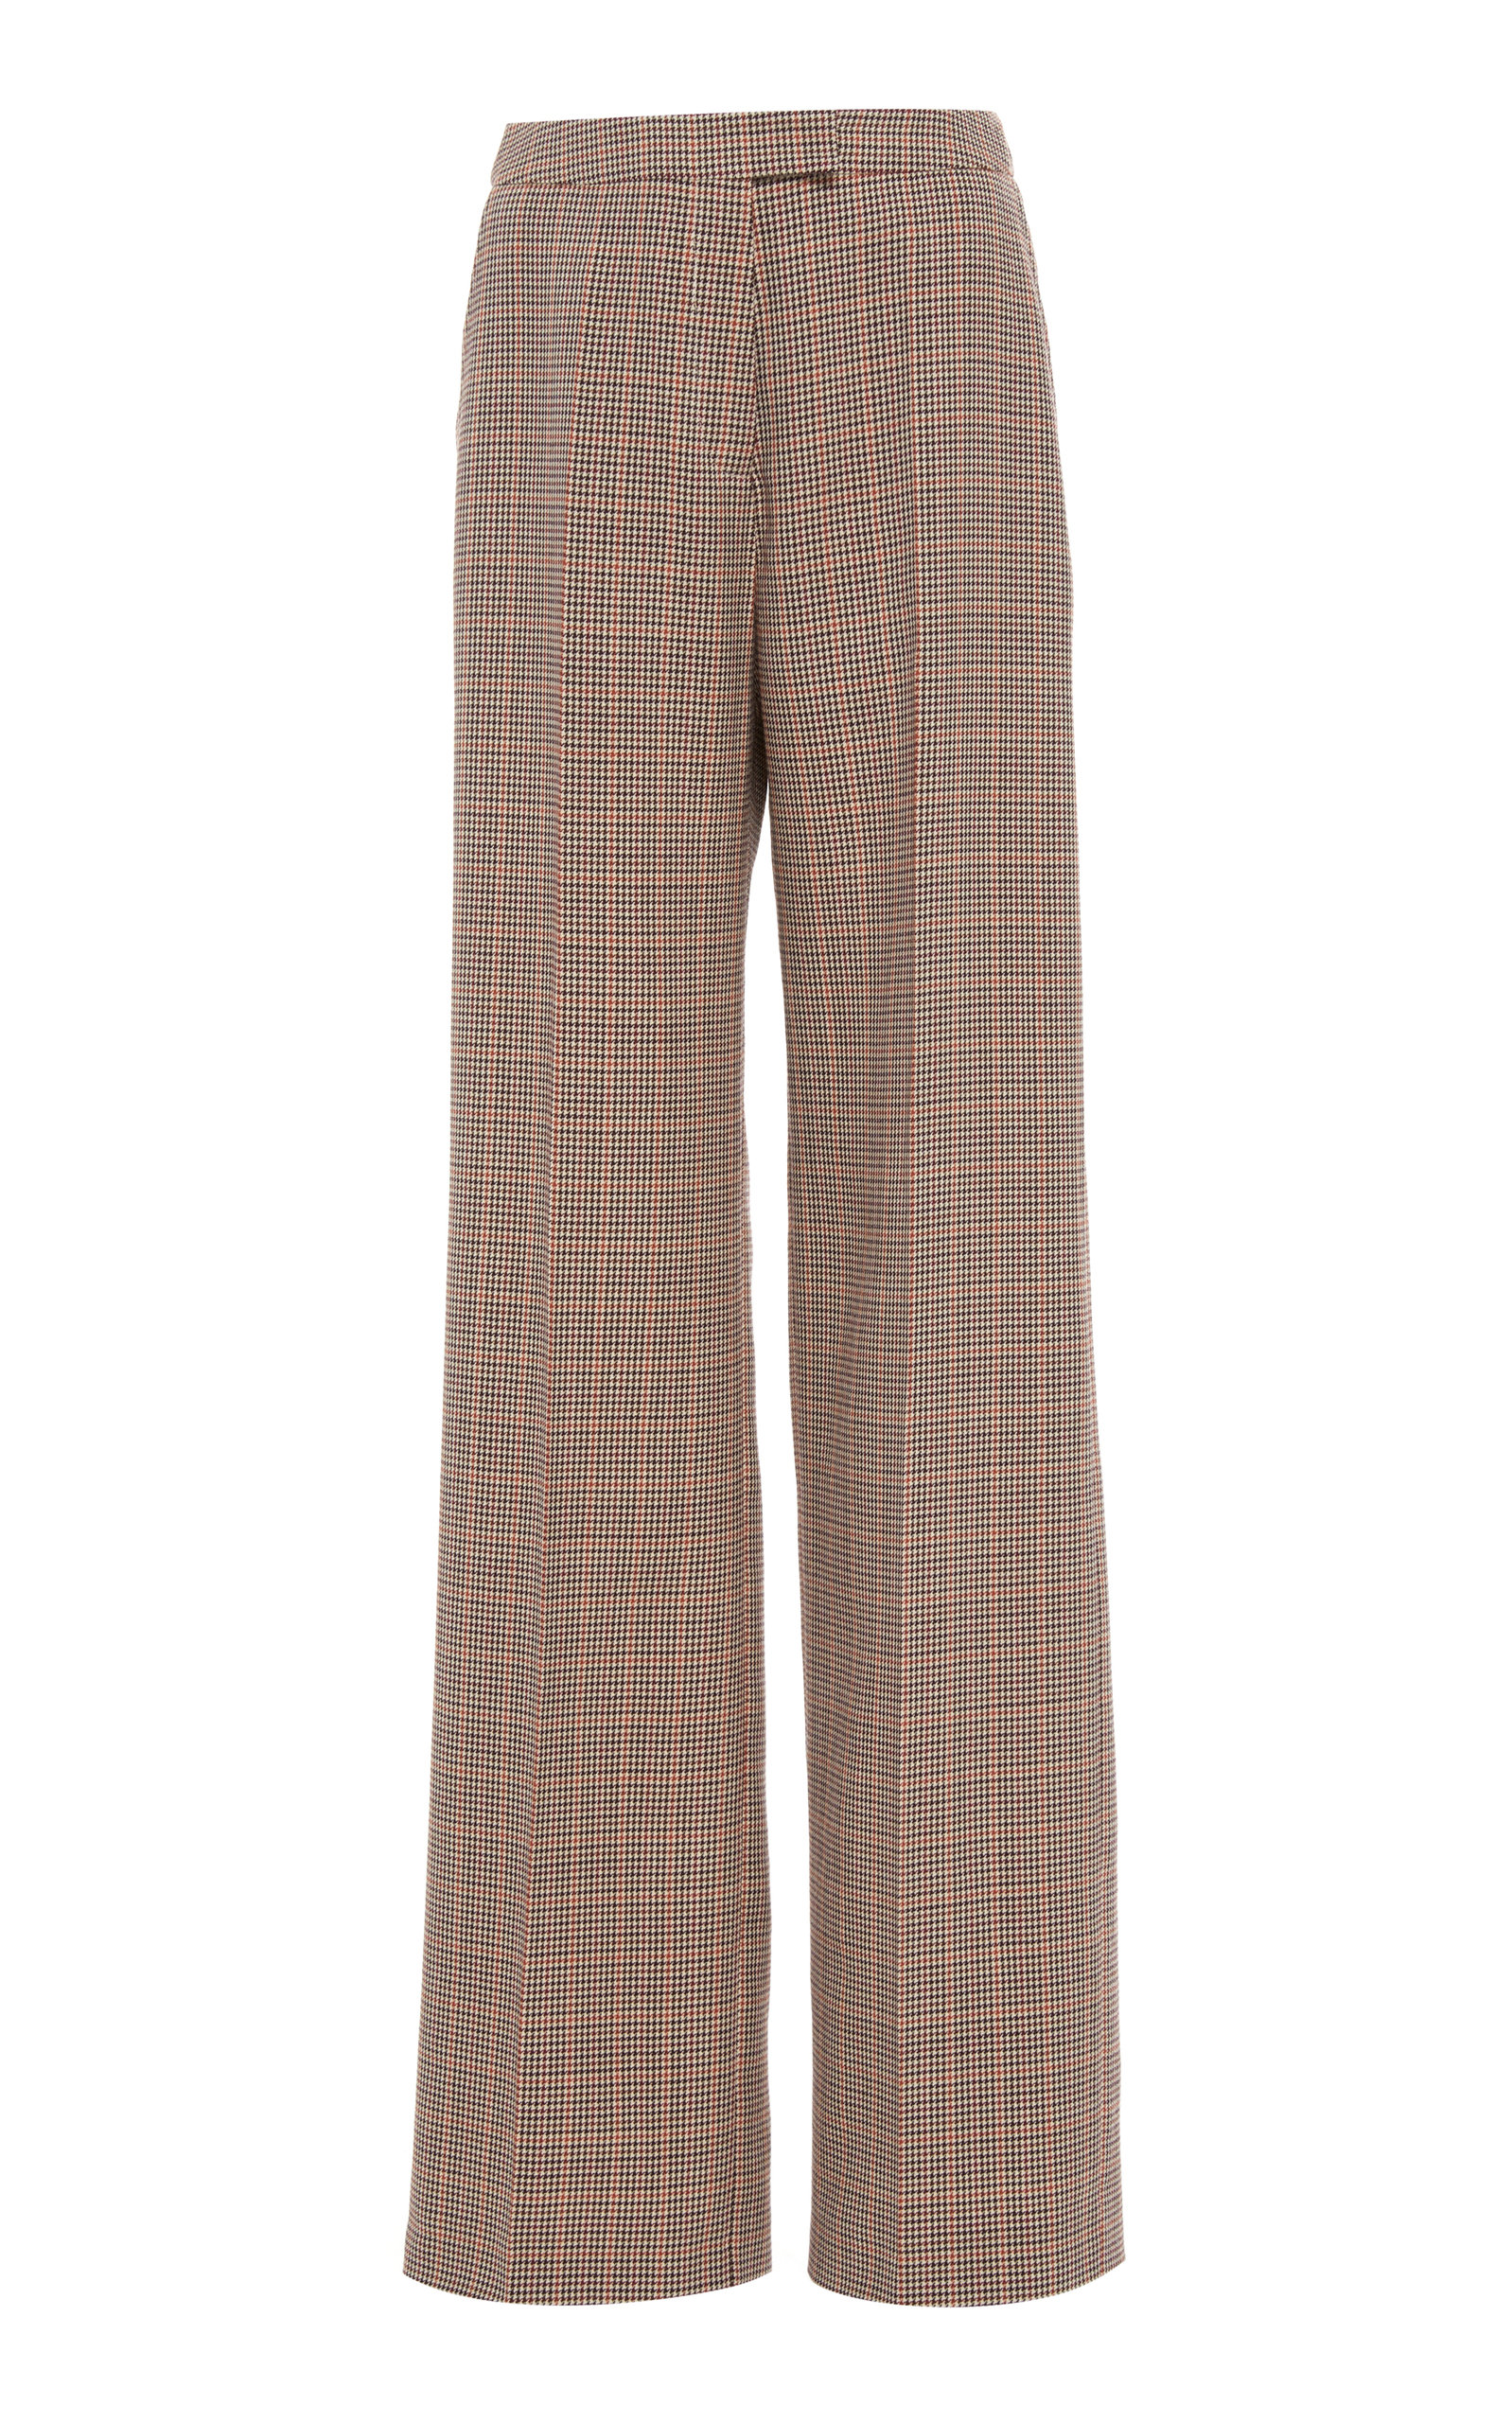 Orfeo Wool Pant by Brock Collection